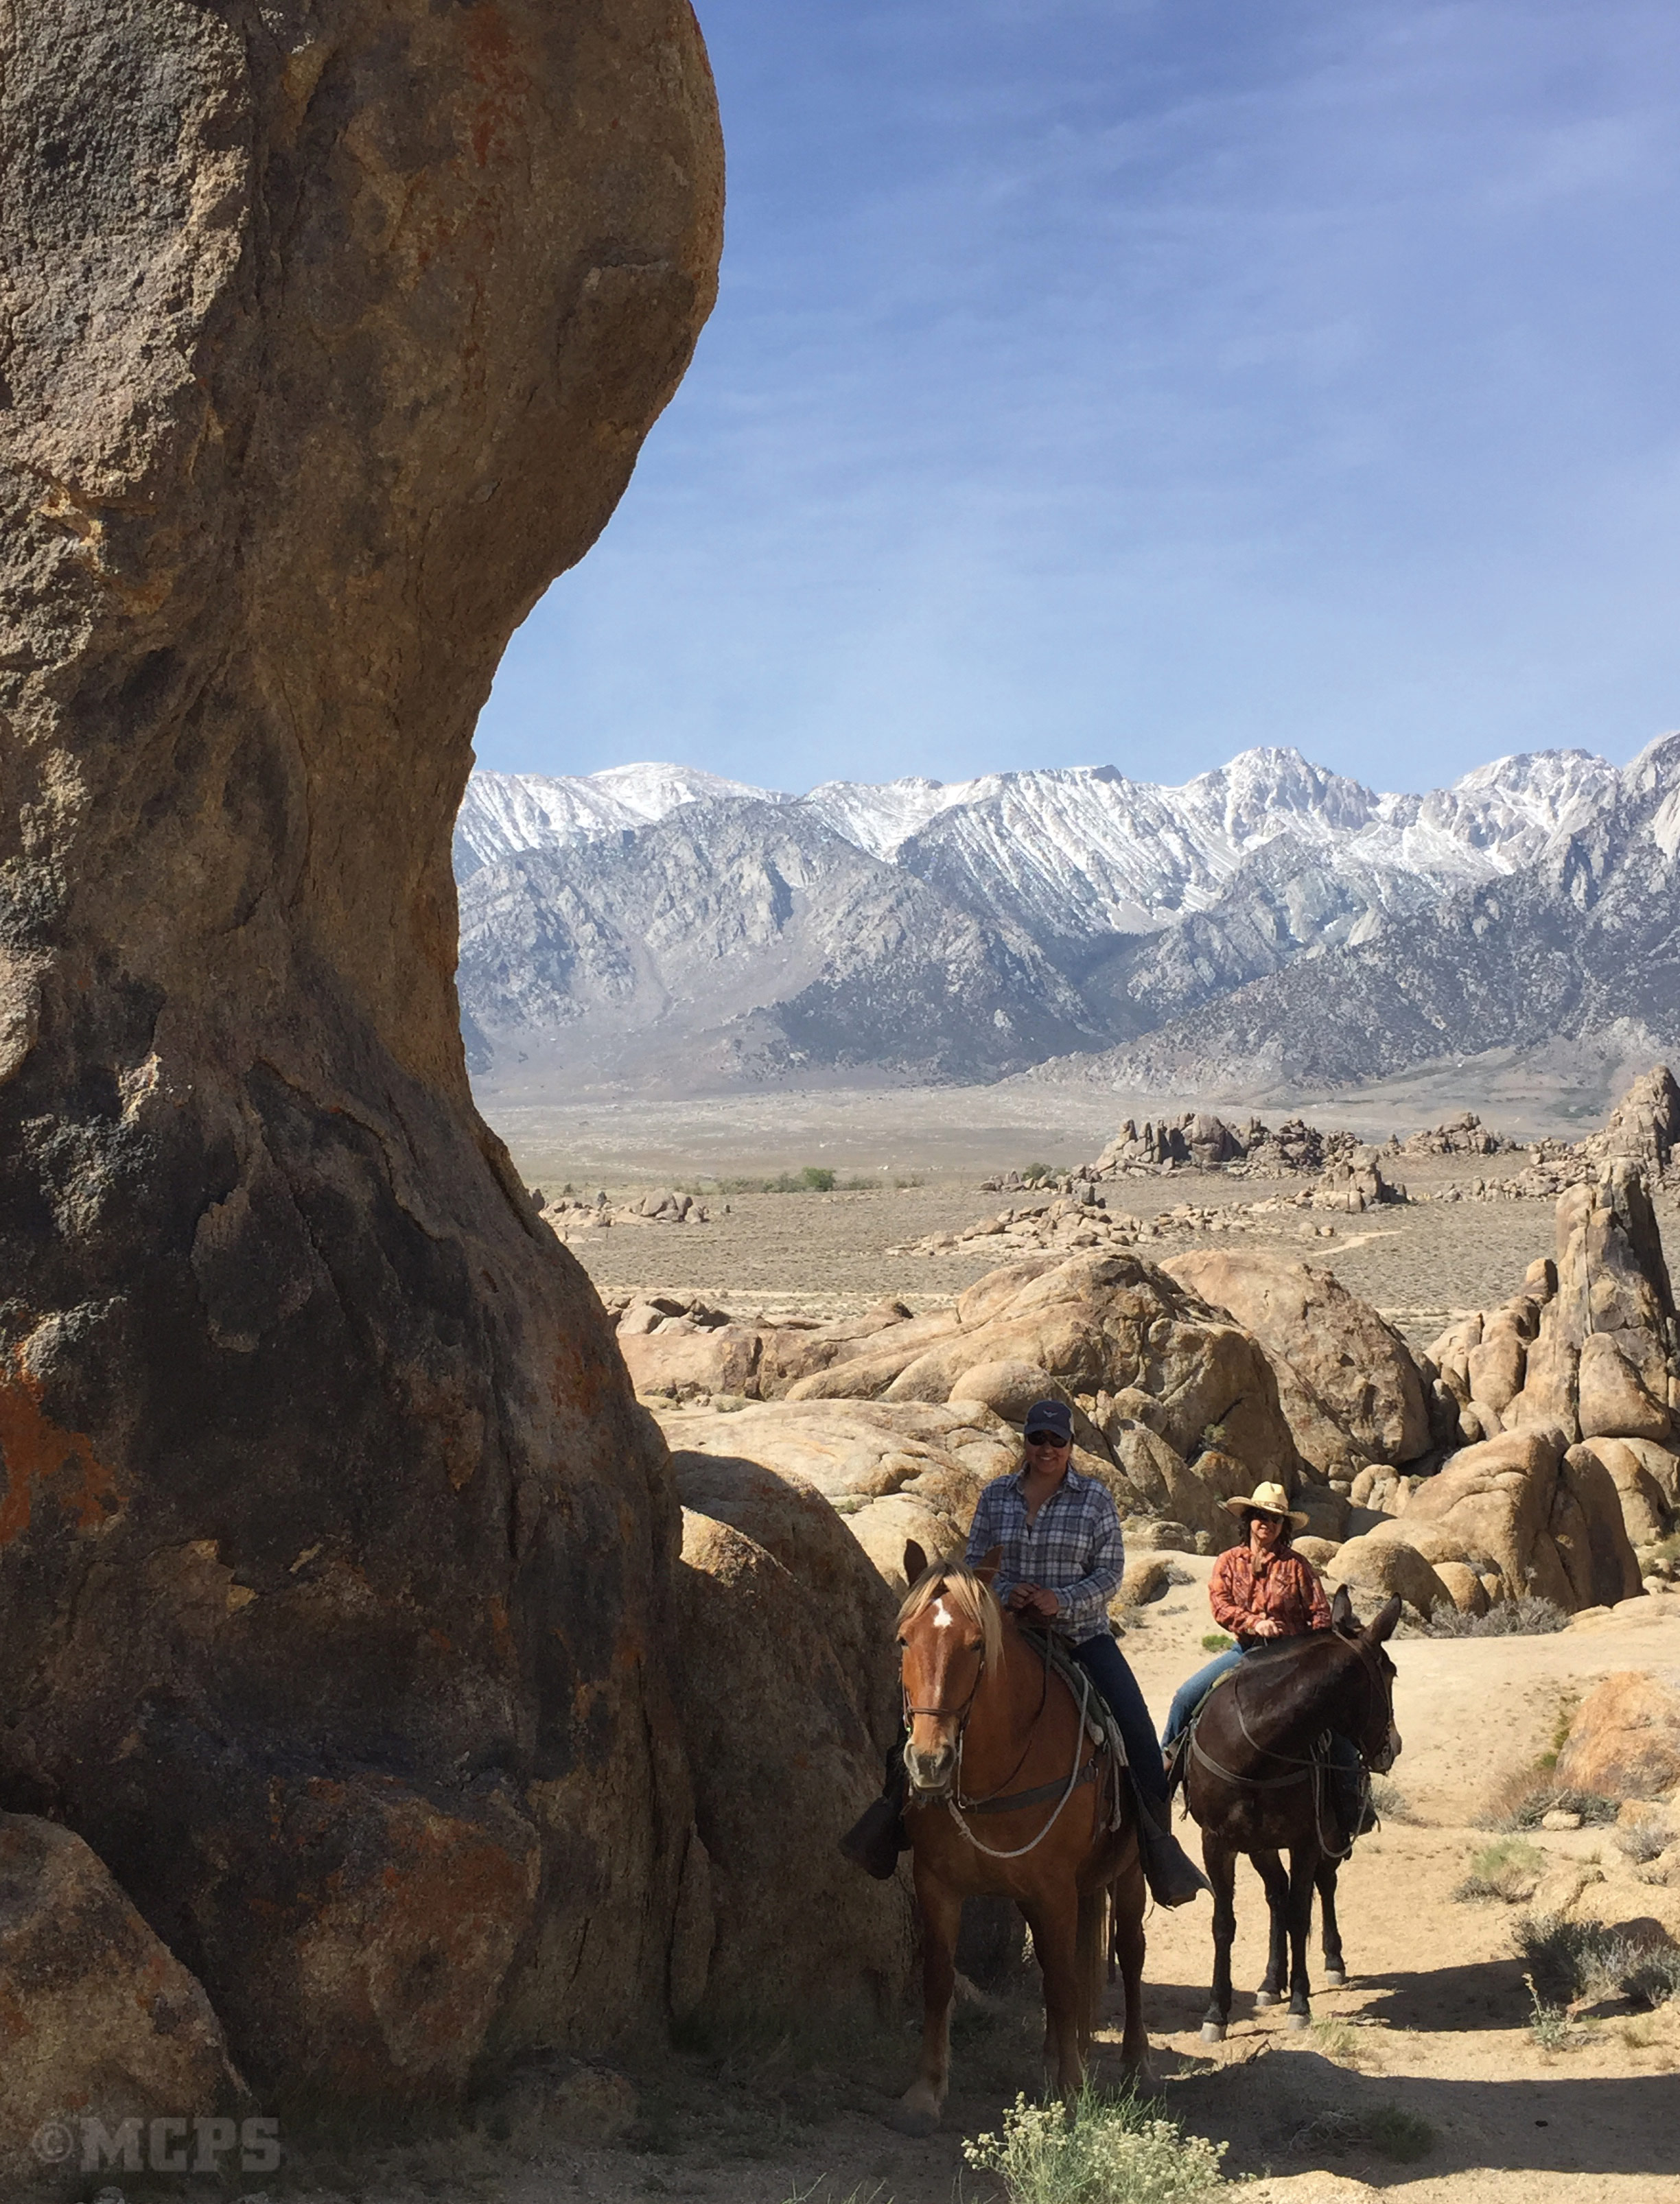 riders exploring the Amazing geology  in the Alabama Hills